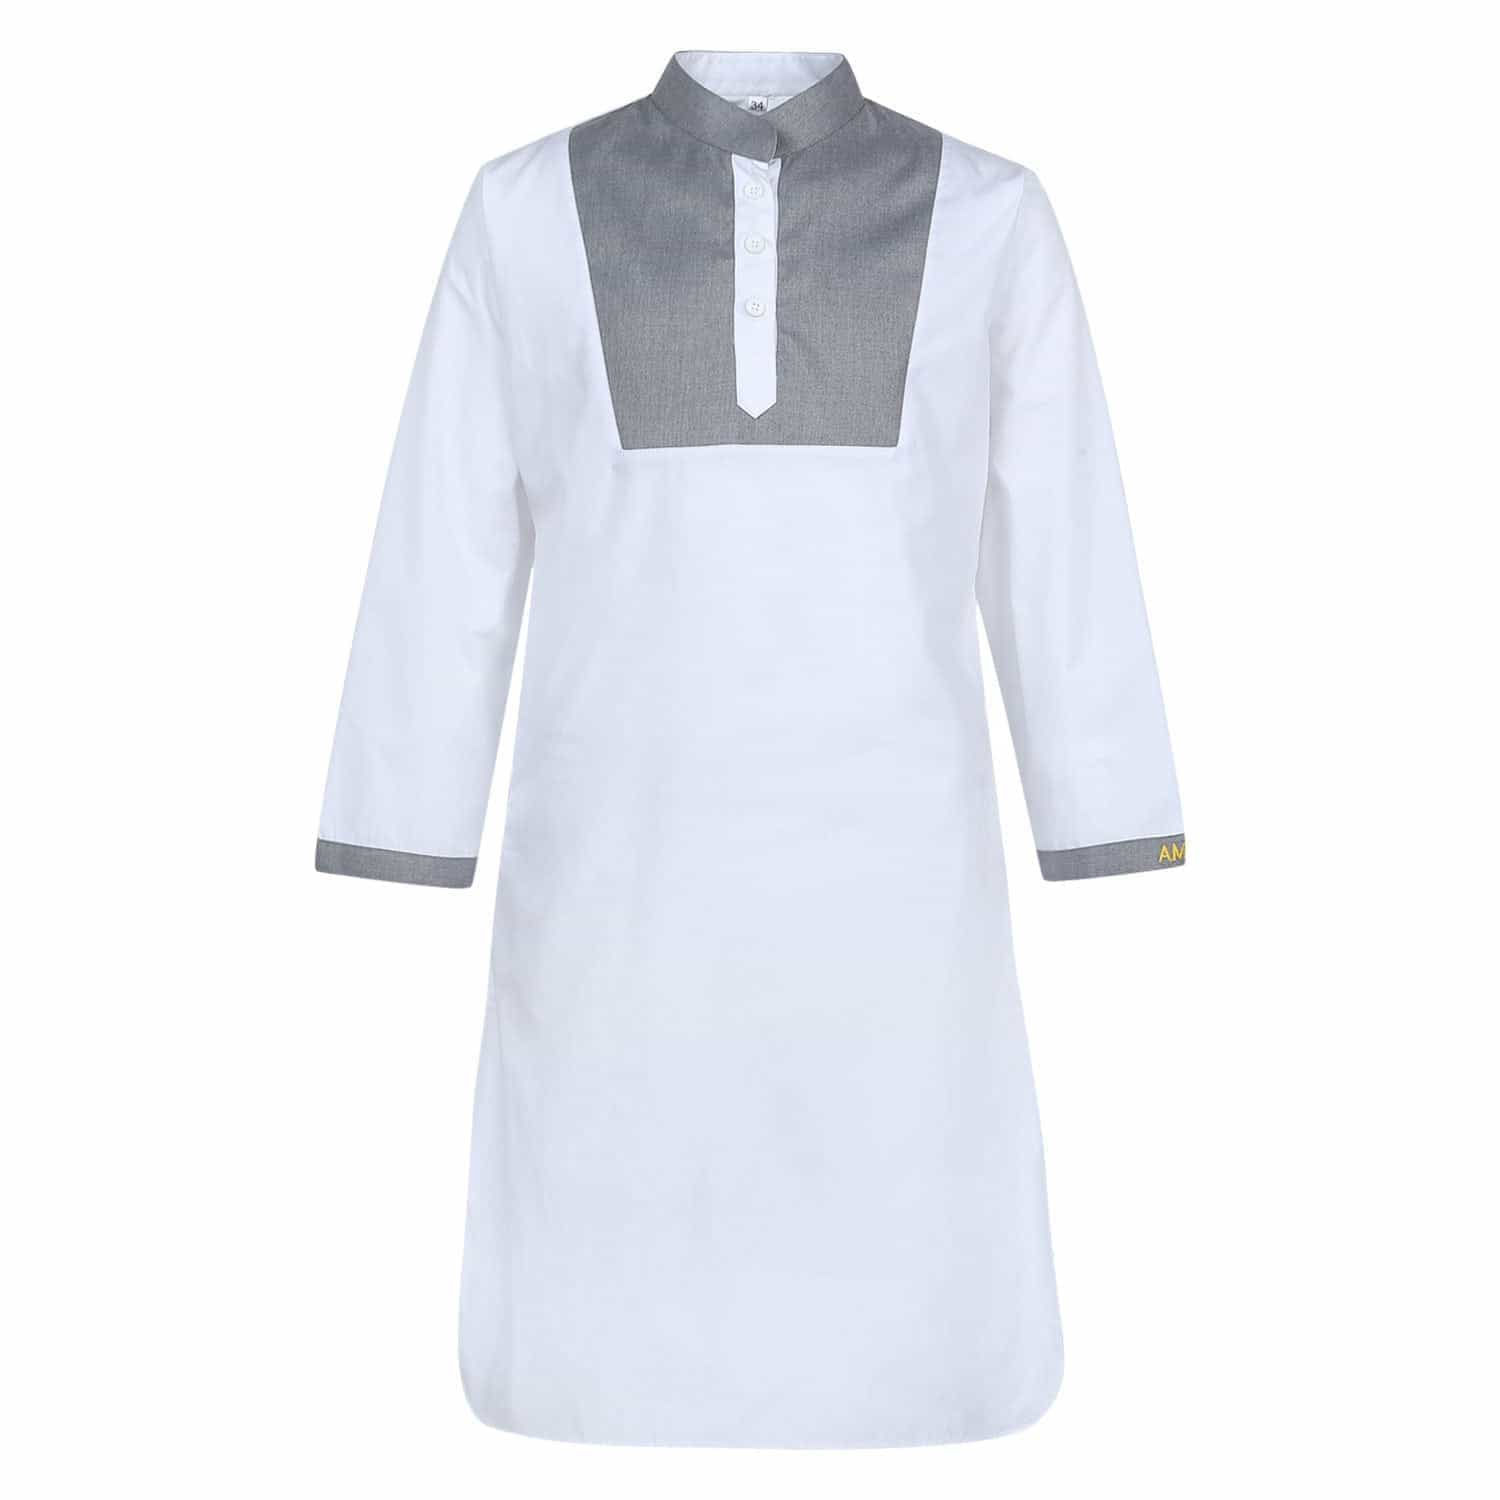 Amity Winter Girls Suit - Class 9 to 12